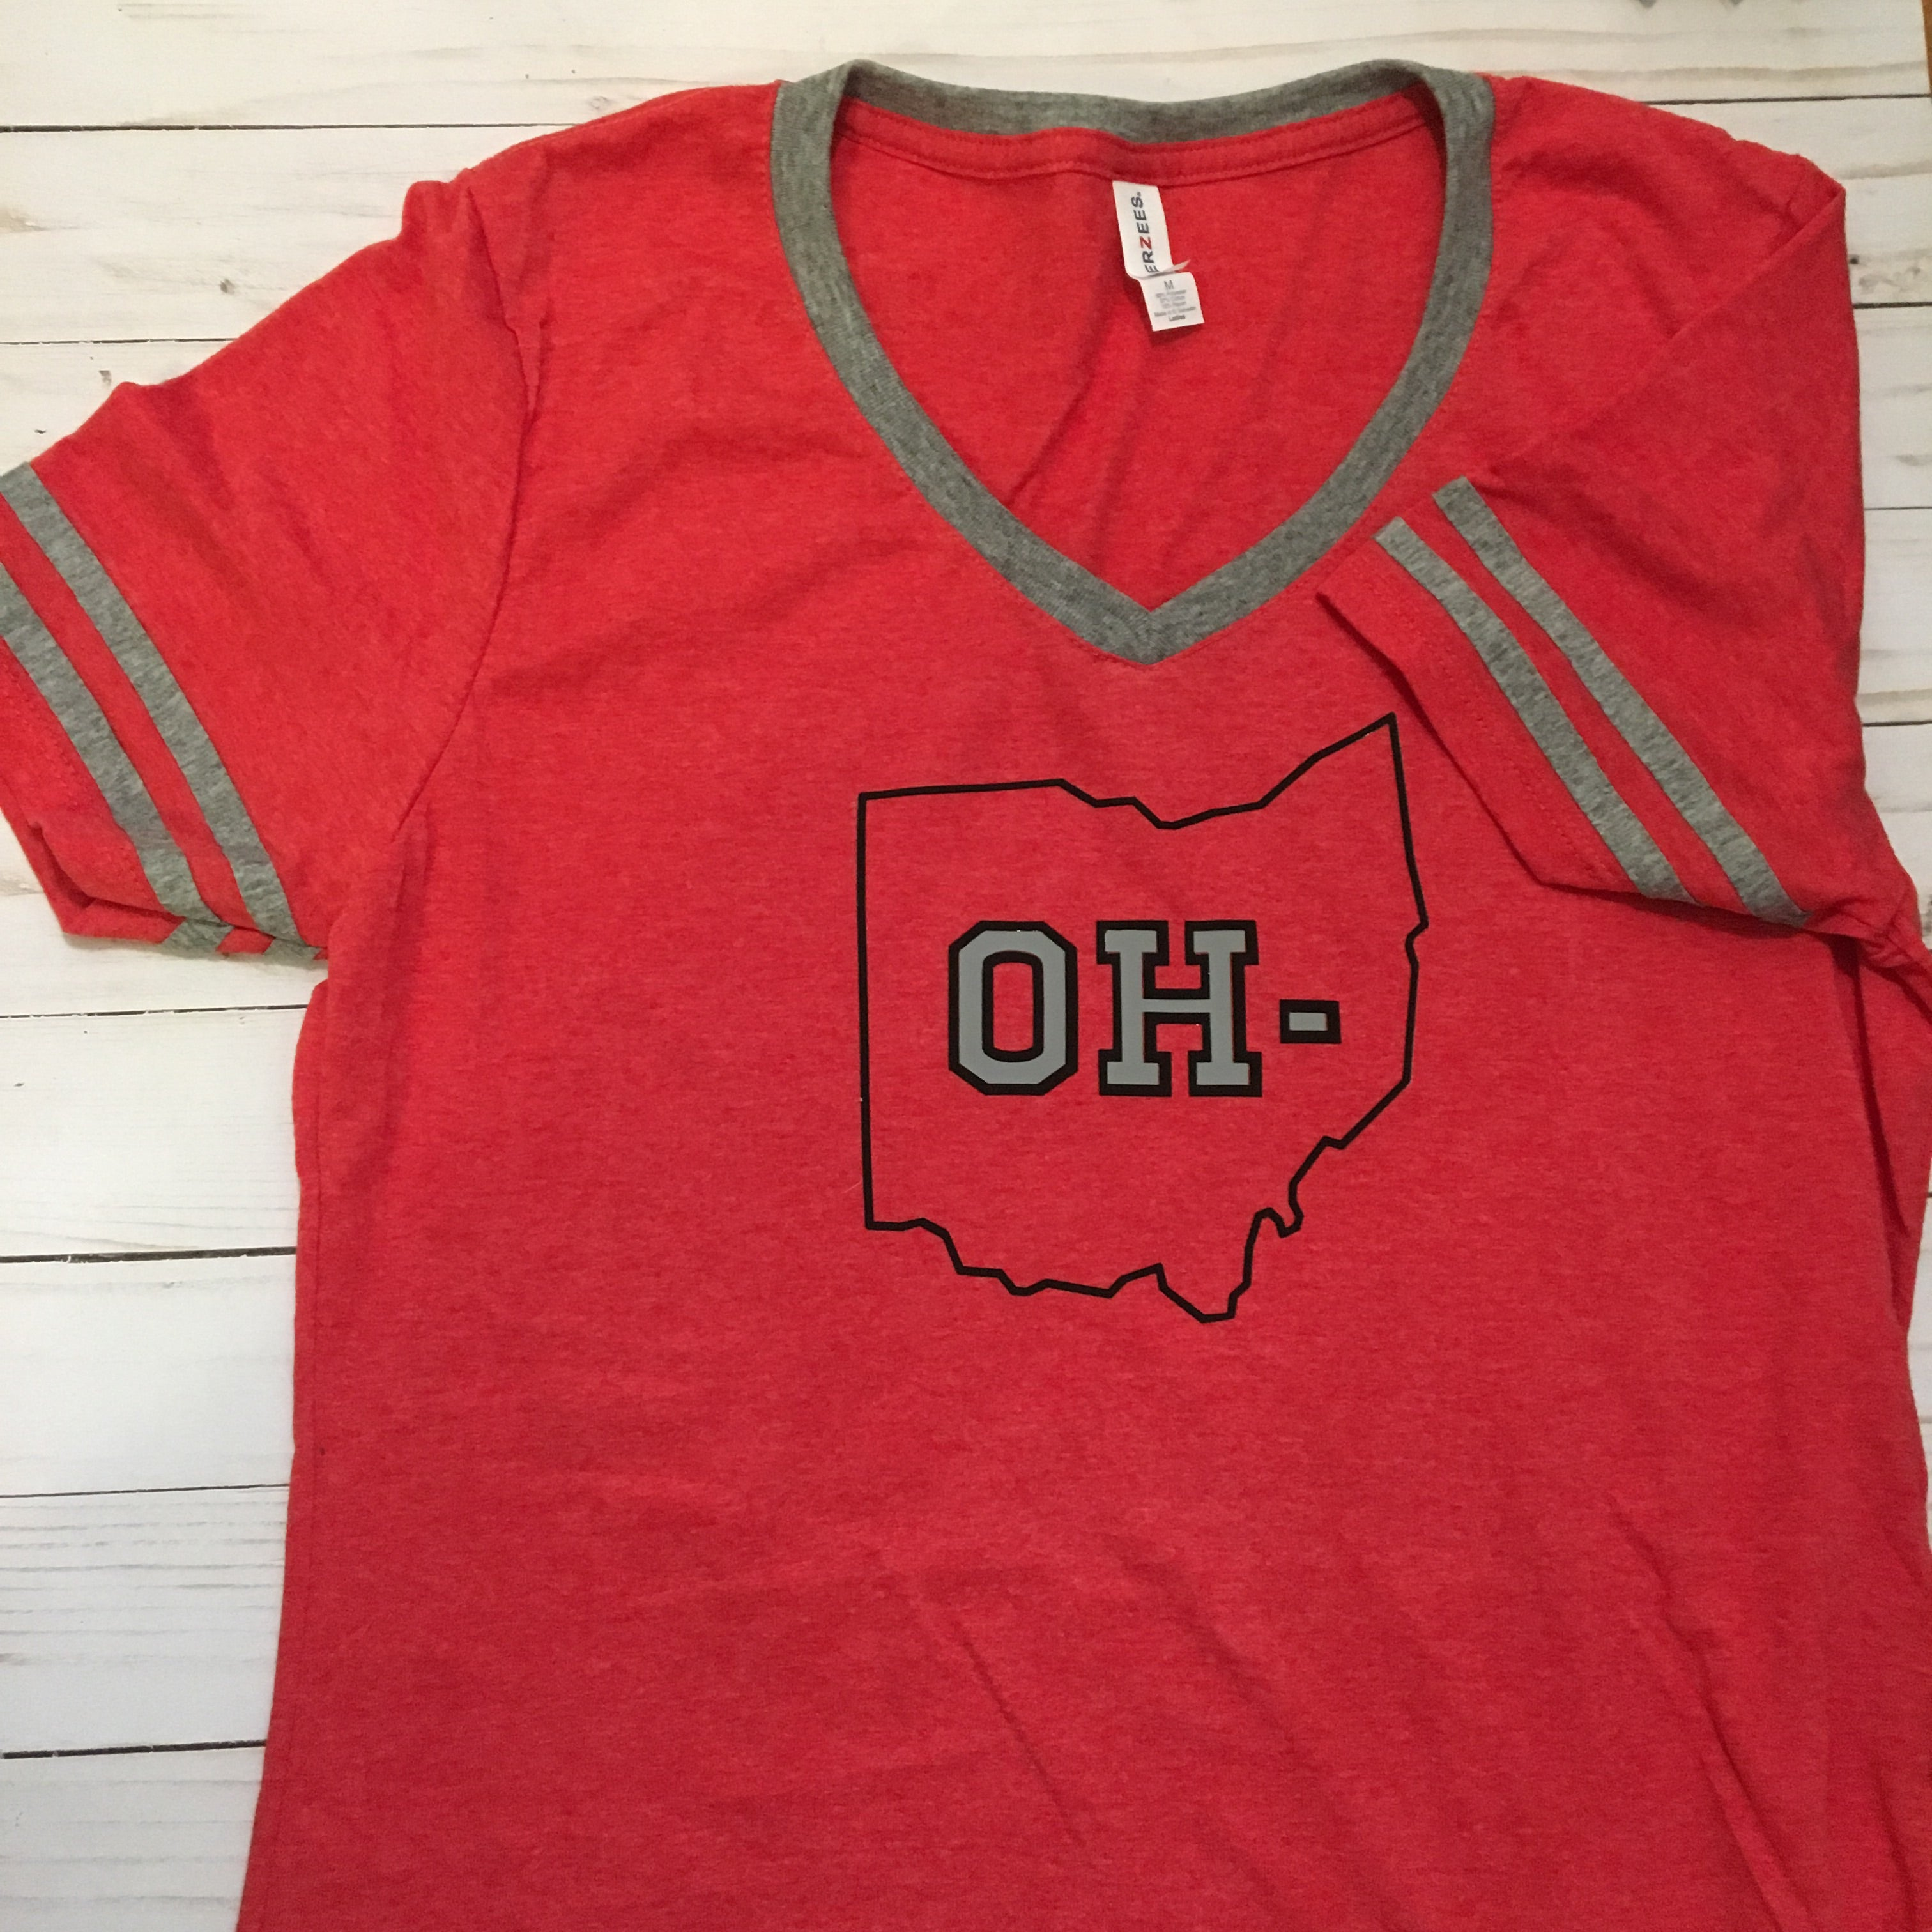 OH- women's cut red v neck tee